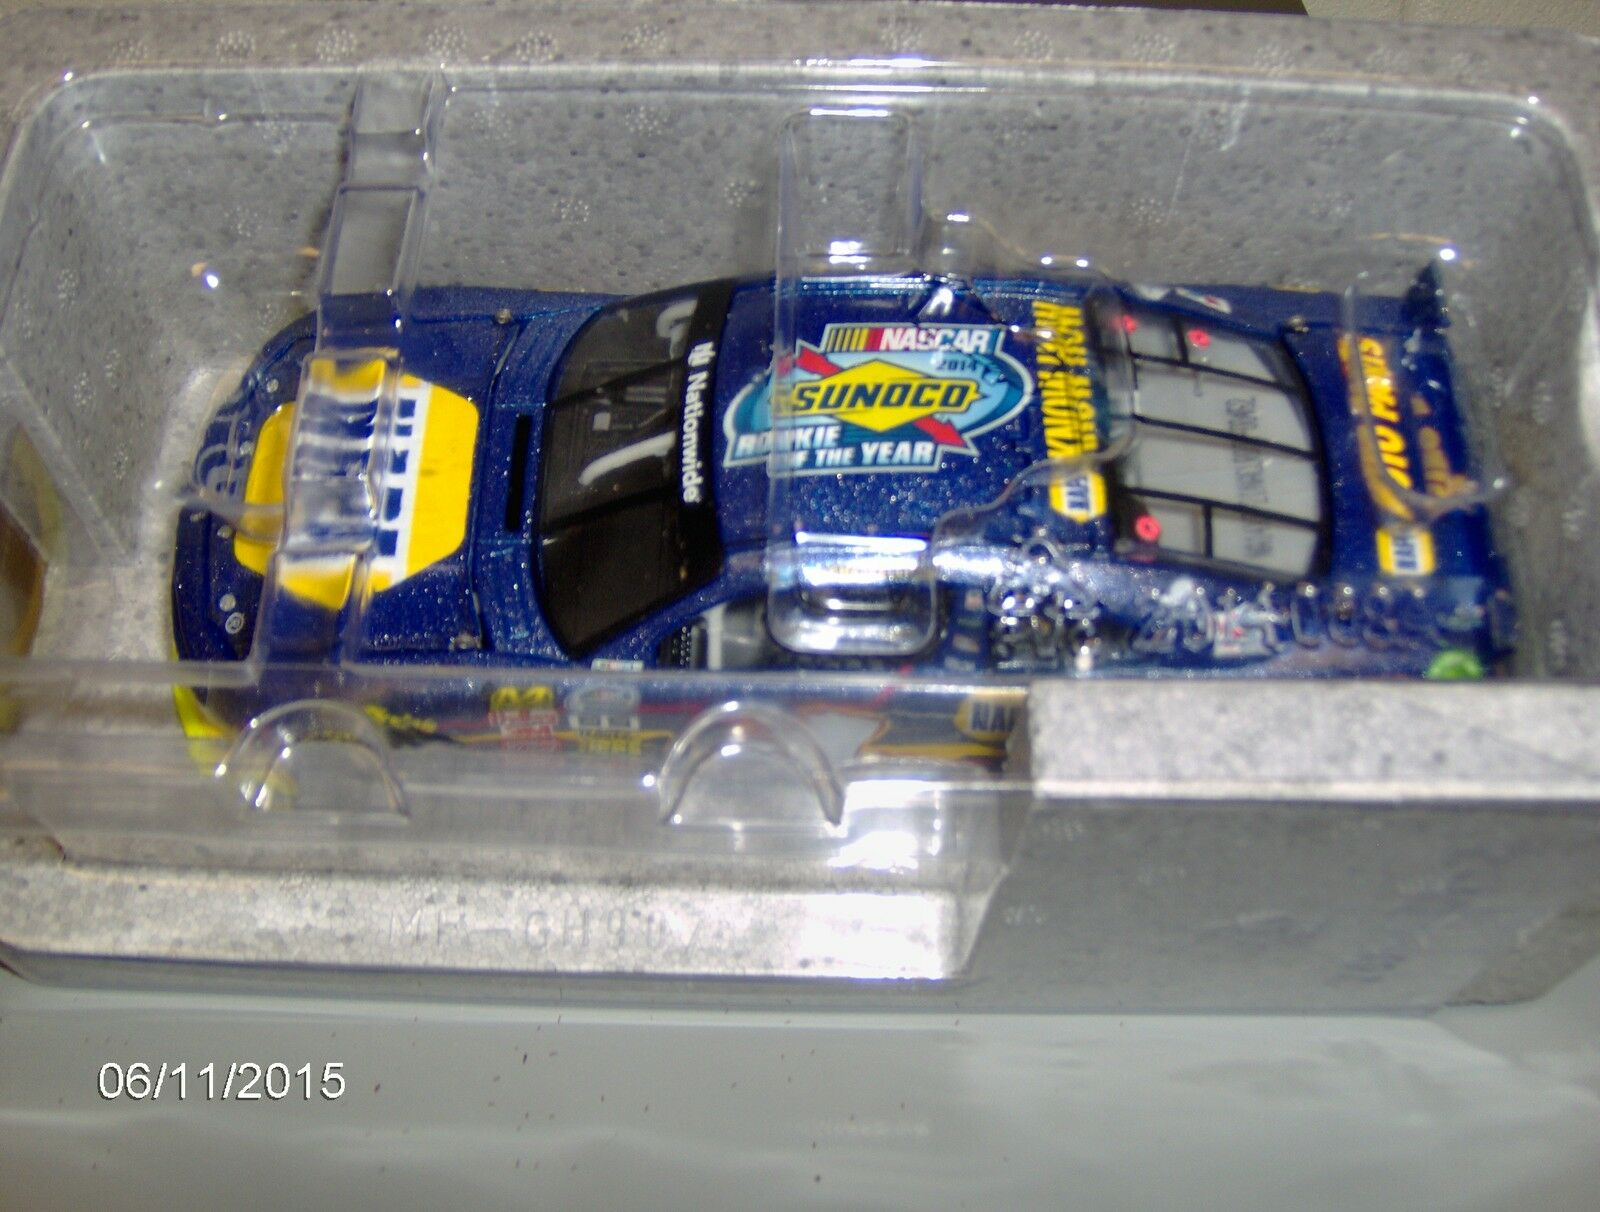 2015 Action Lionel CHASE ELLIOTT Nationwide 2014 ROOKIE OF THE YEAR Napa 1 24th